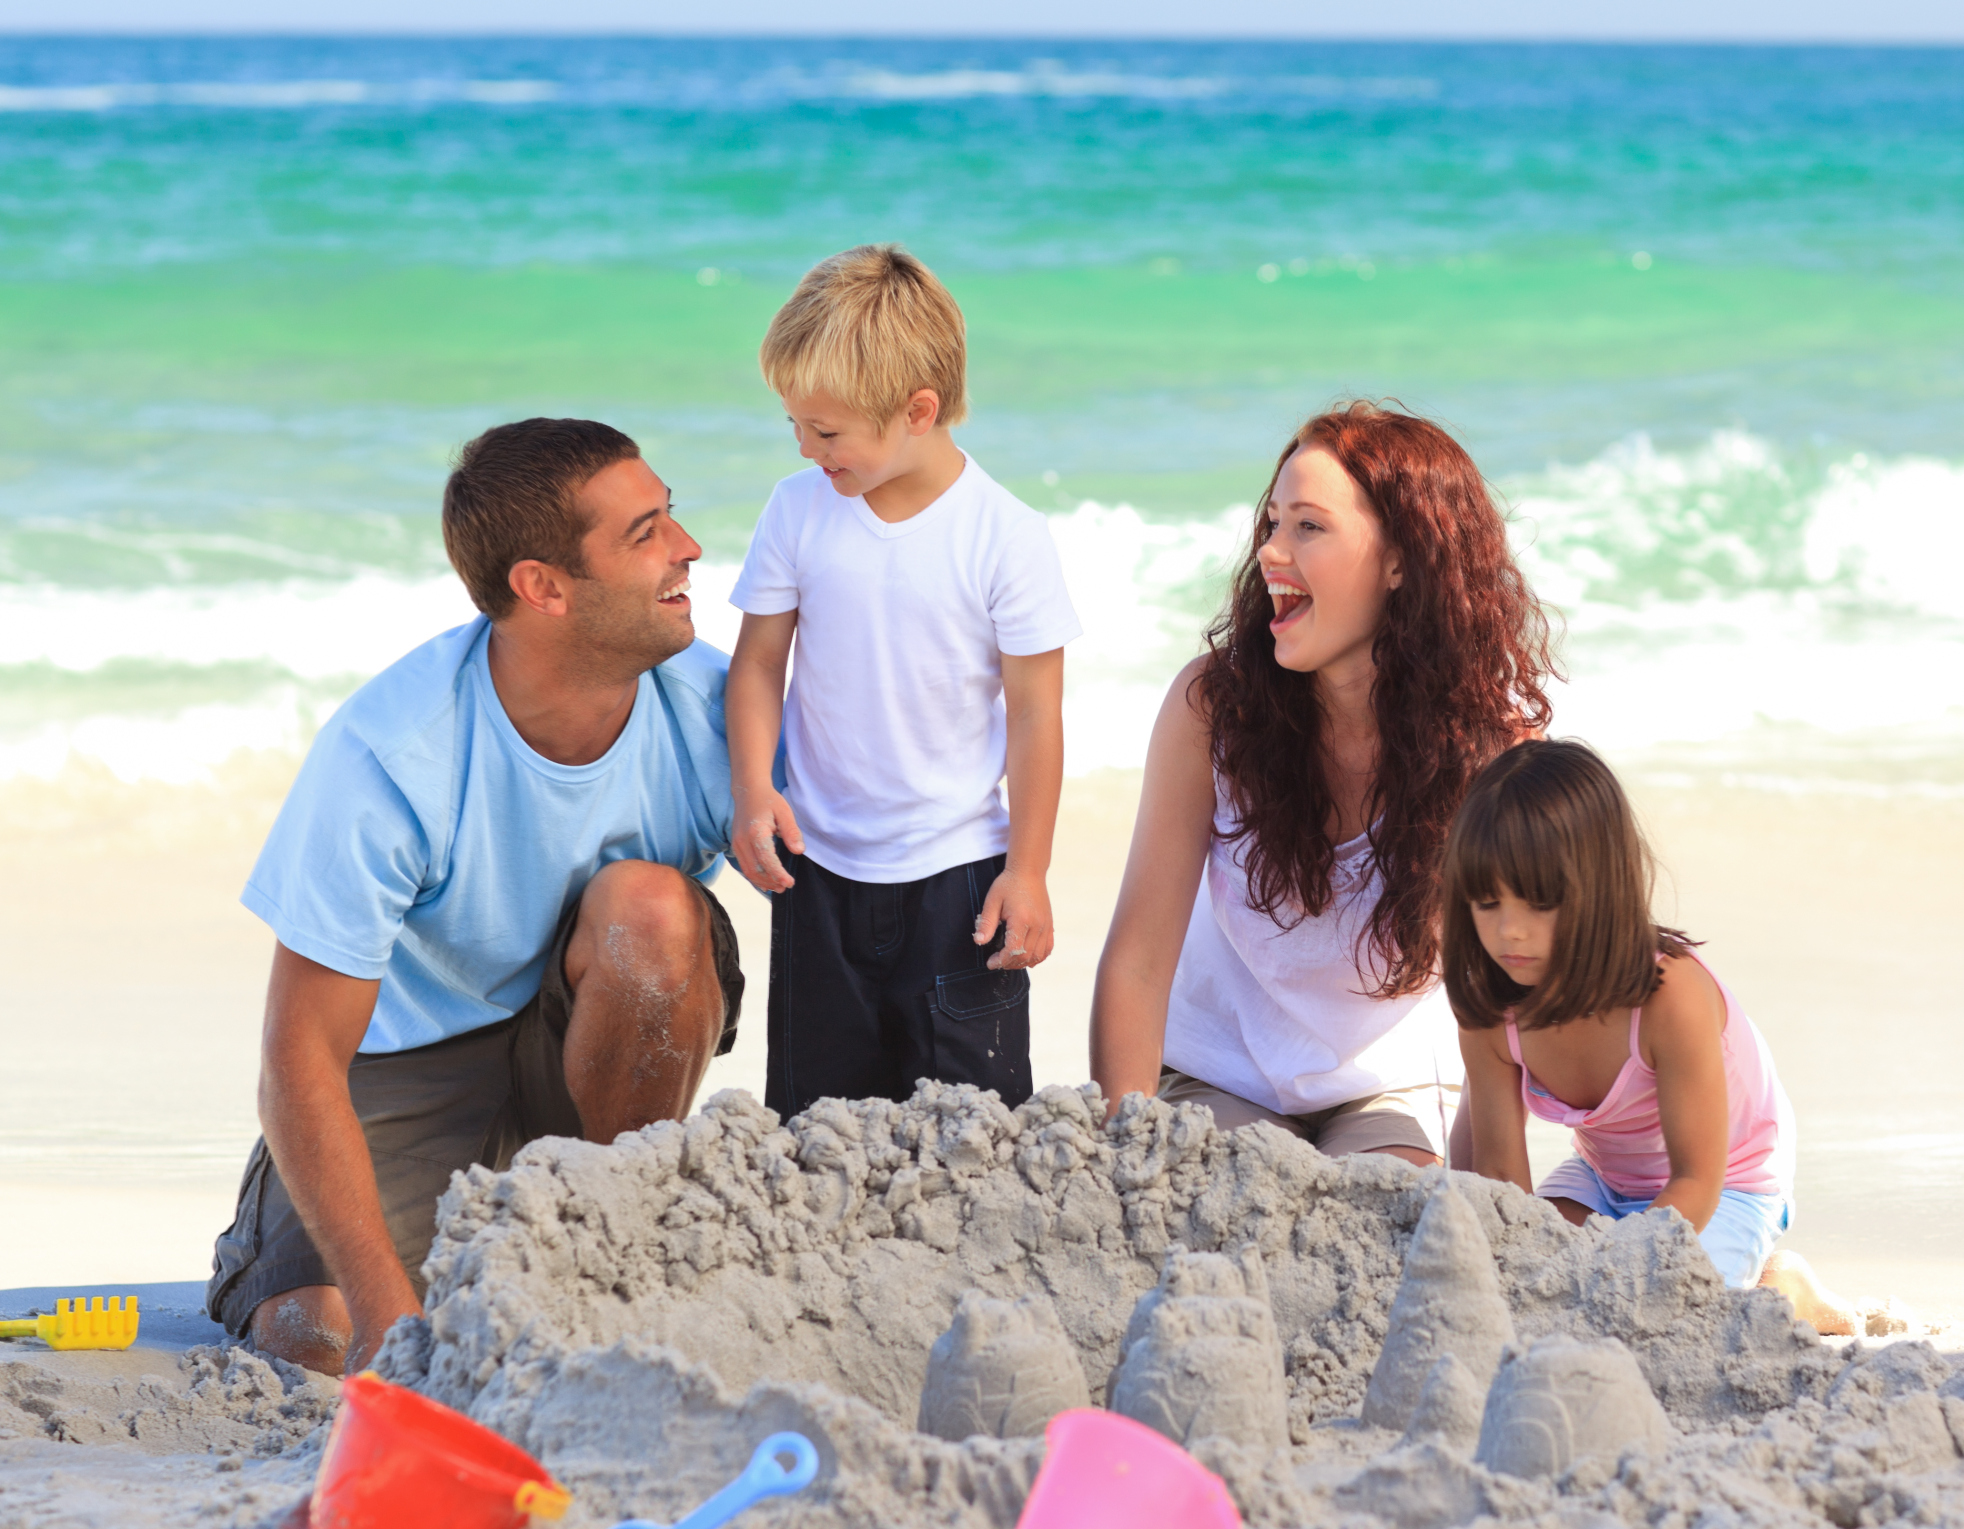 How to Survive the Beach with Kids